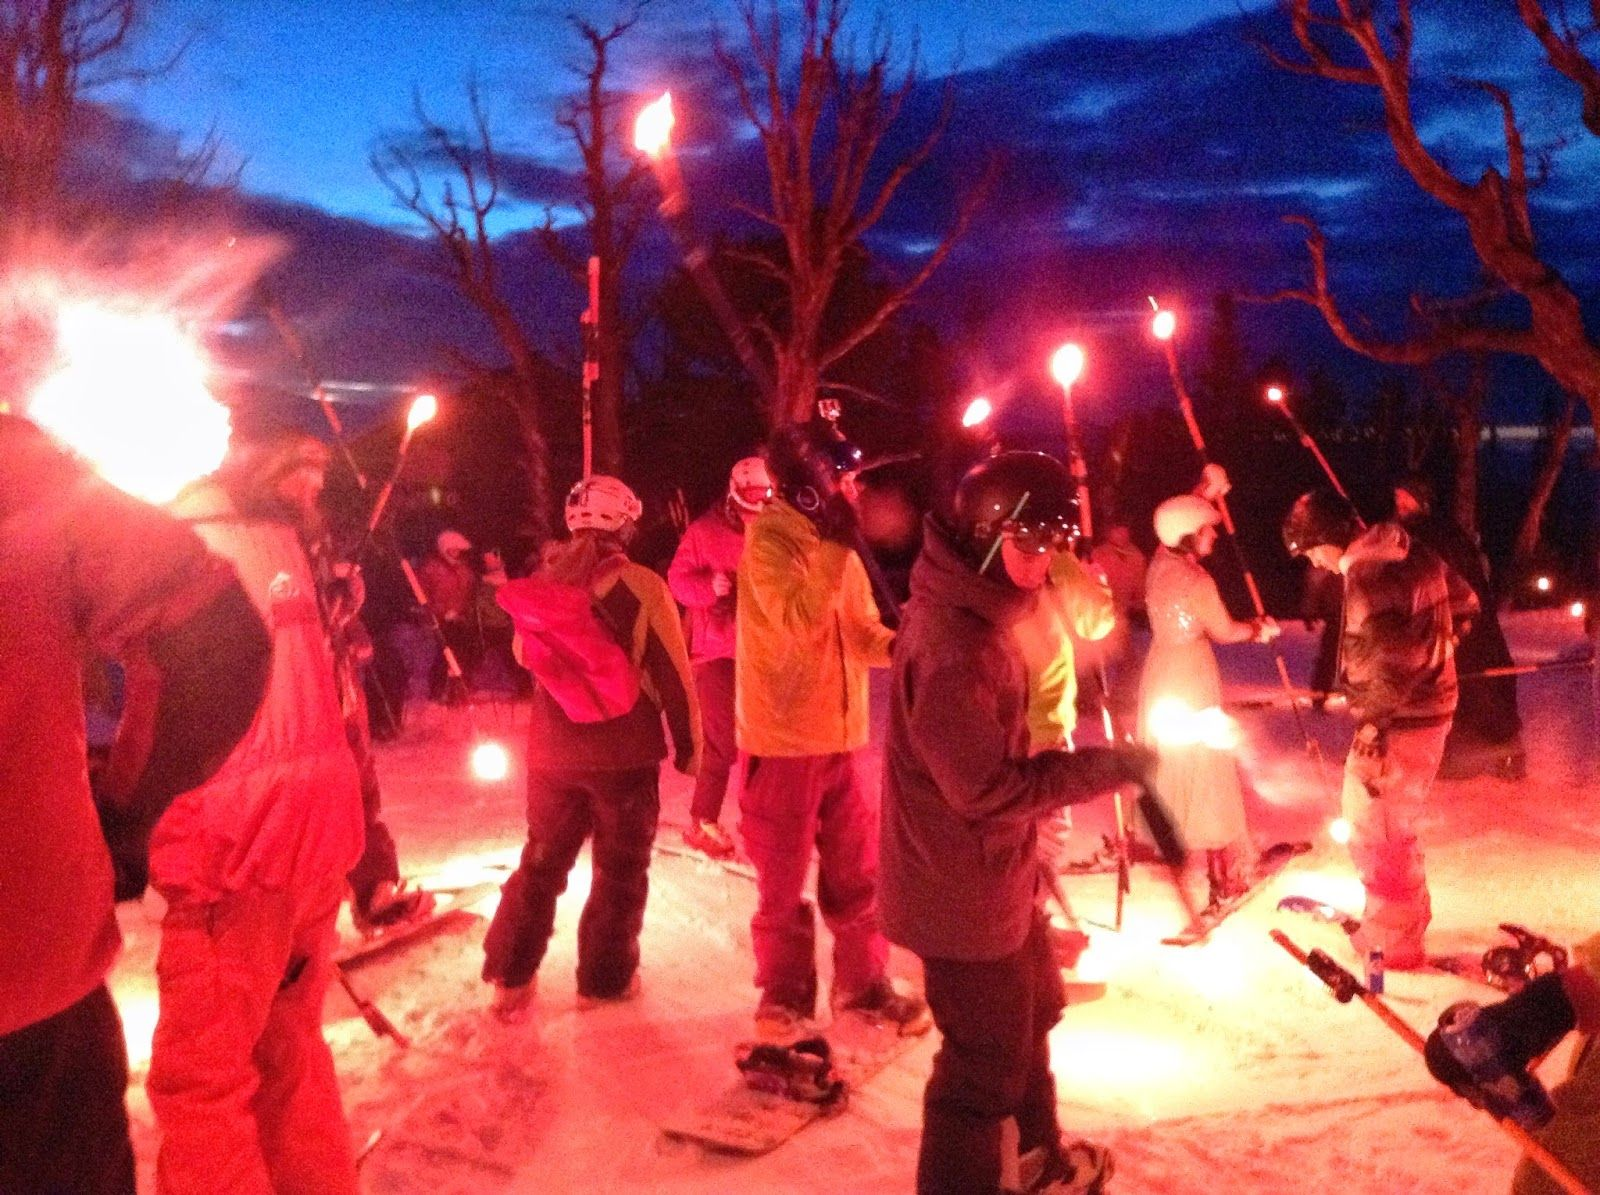 Torches lit, ready to descend! Red Lodge Mountain, Winter Carnival 2015